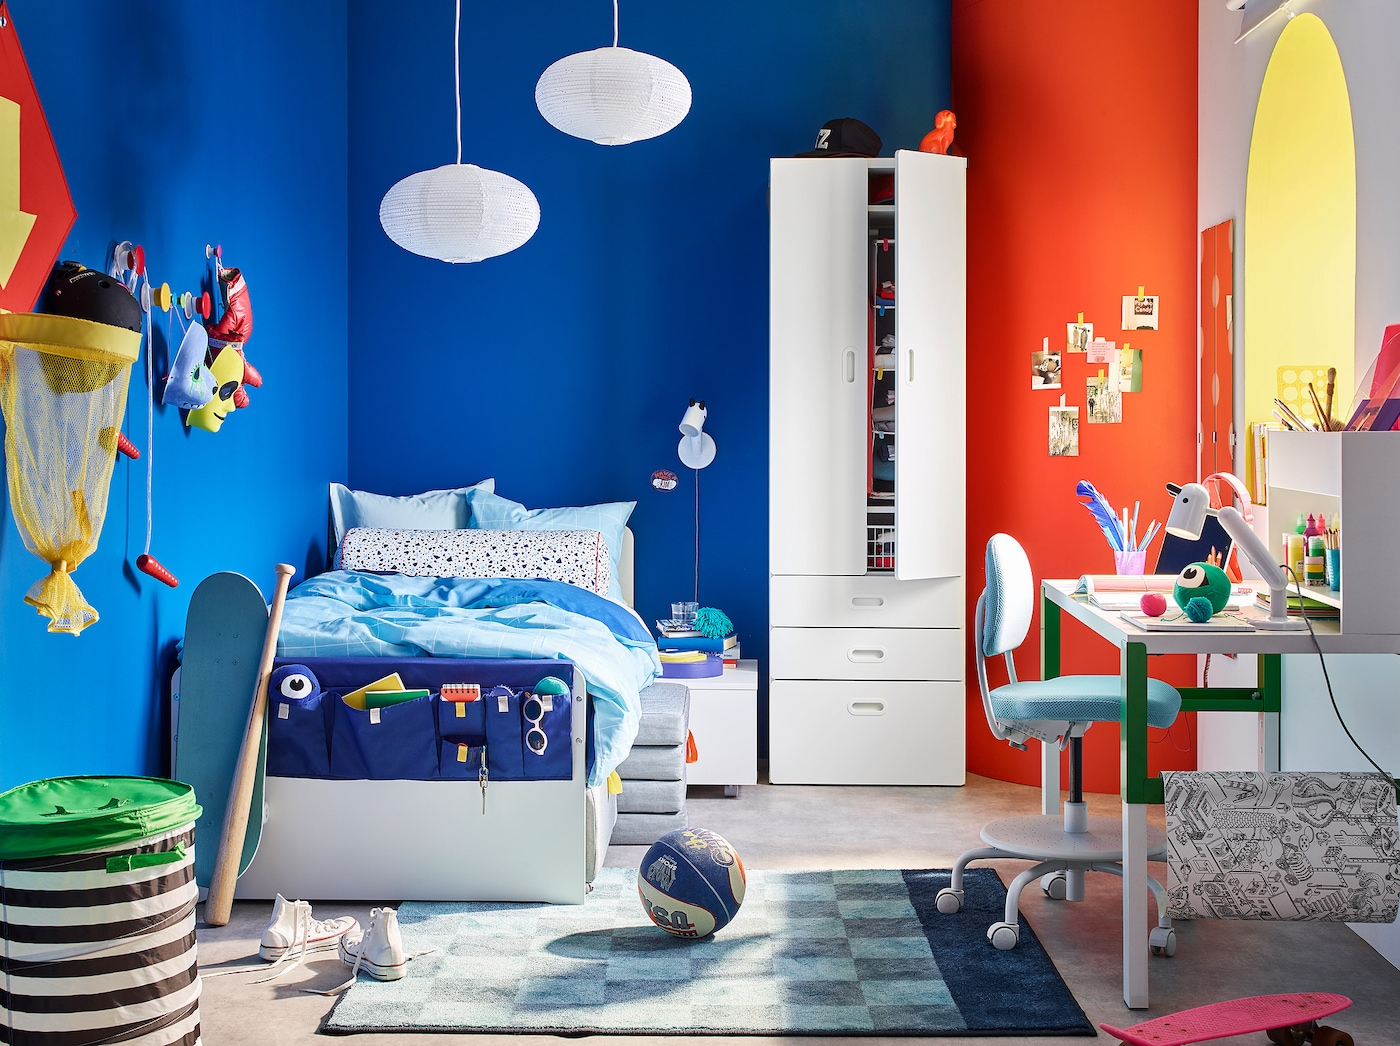 A white wardrobe and a white bed with colorful bedspreads, bright bold wall colors and a nearby desk with chair.